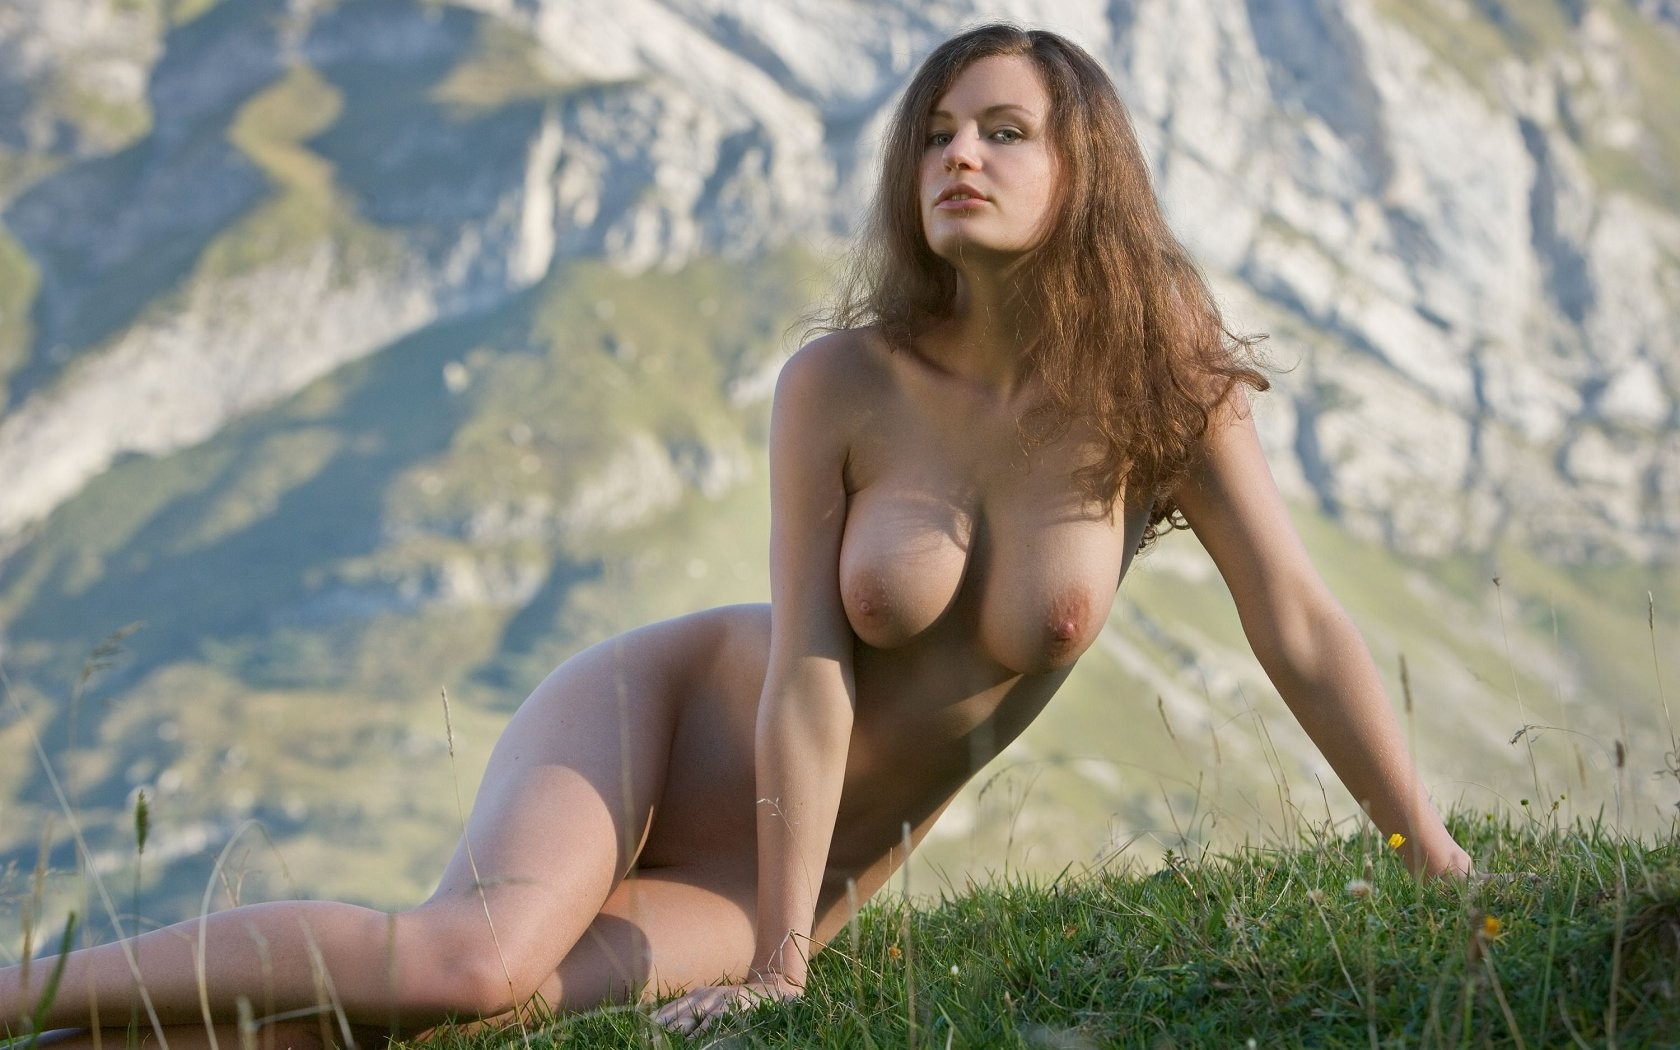 ireland-girls-pictures-nude-forced